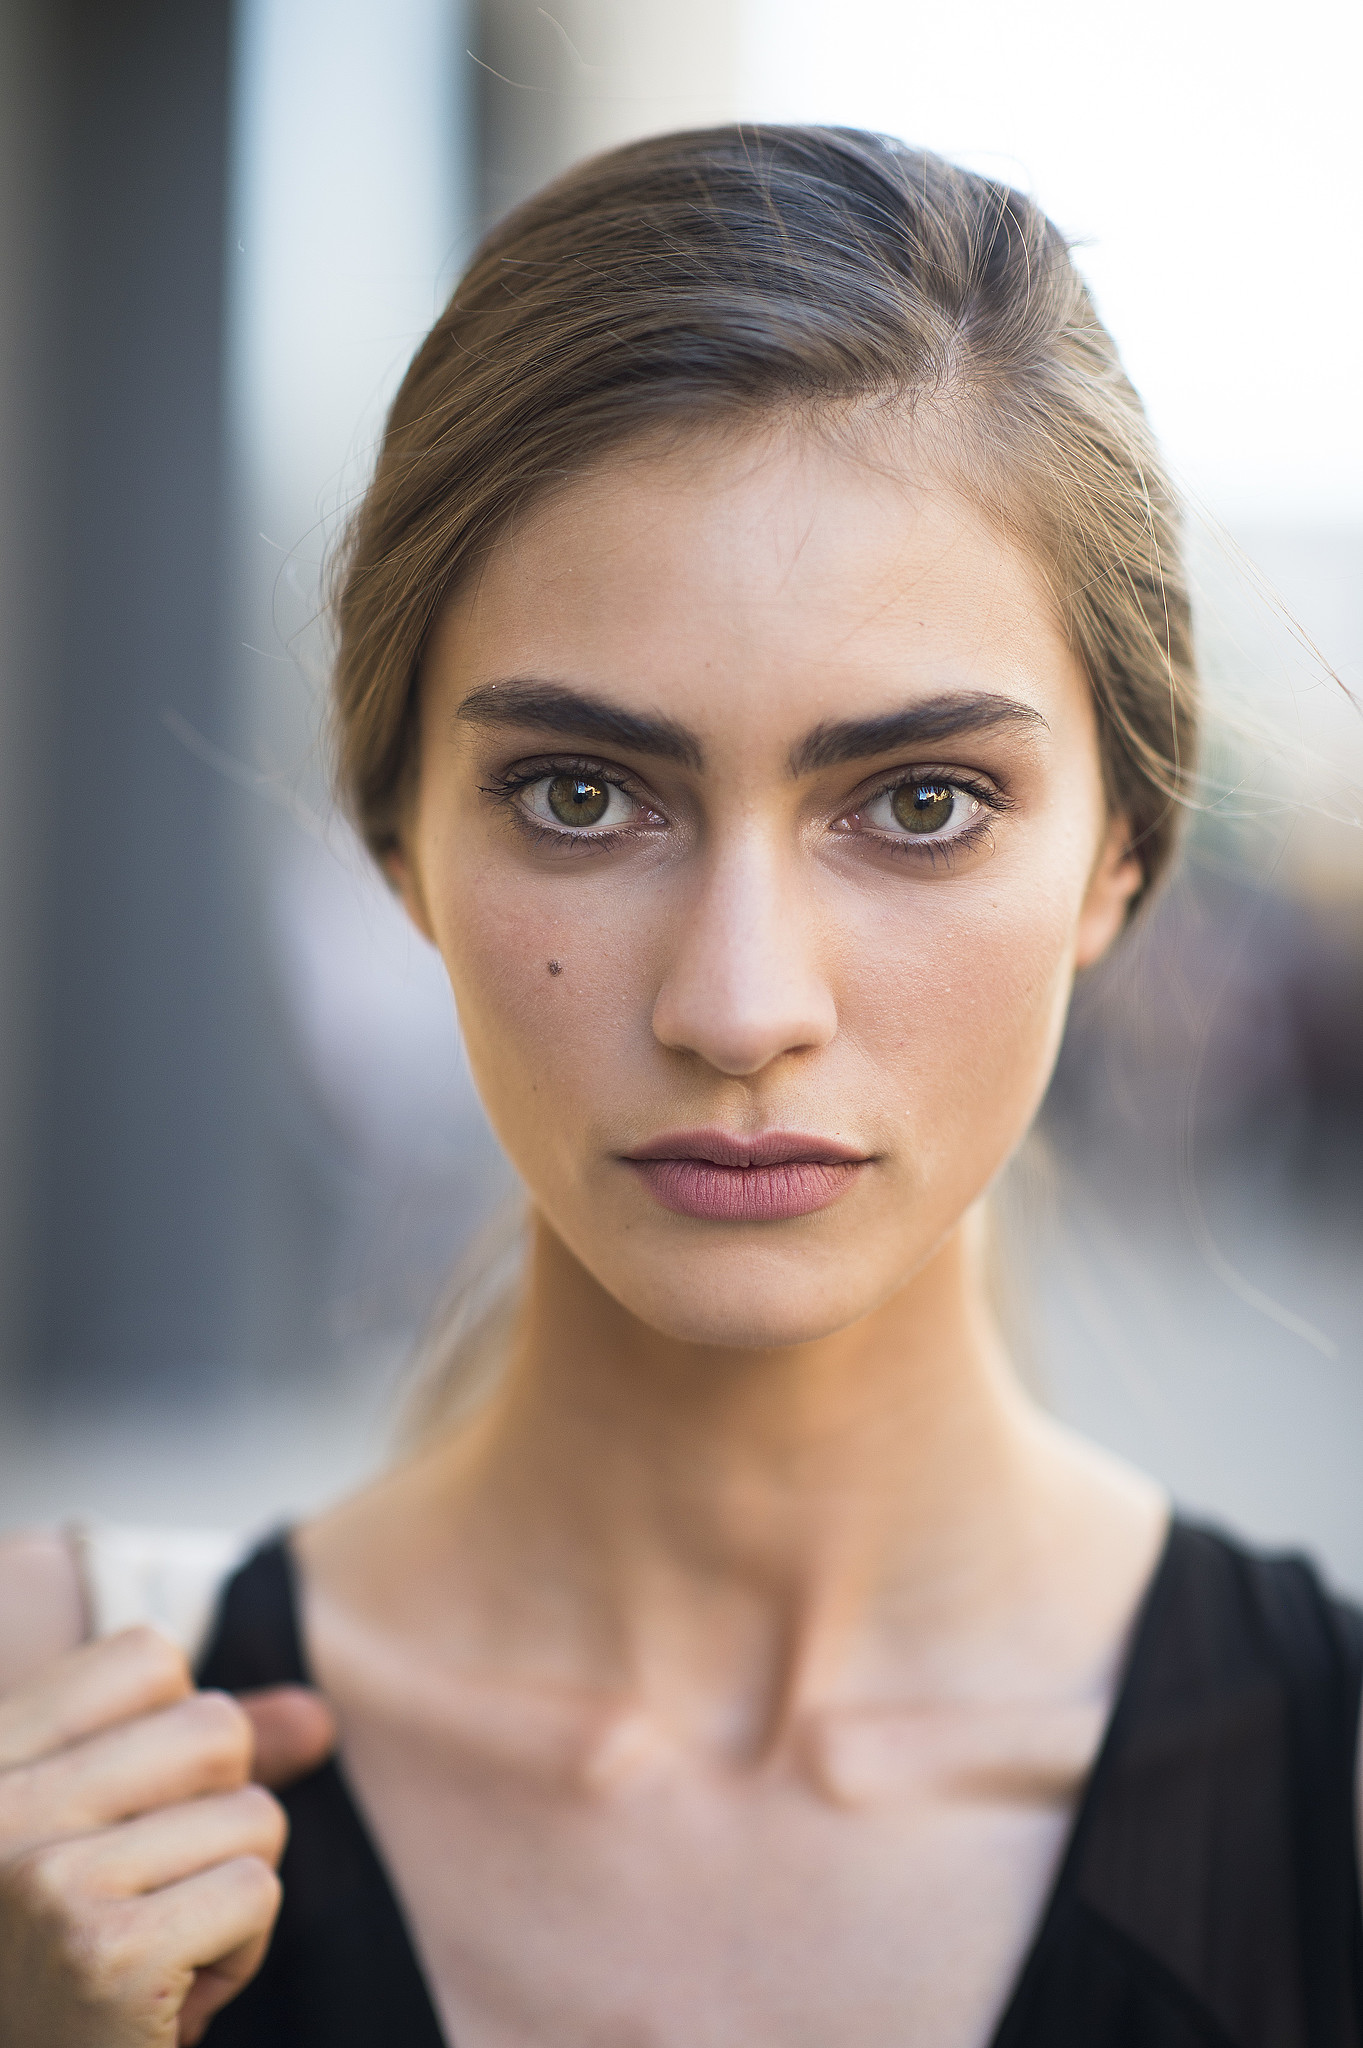 Bold brows and a side-parted ponytail? A match made in heaven.  Source: Le 21ème | Adam Katz